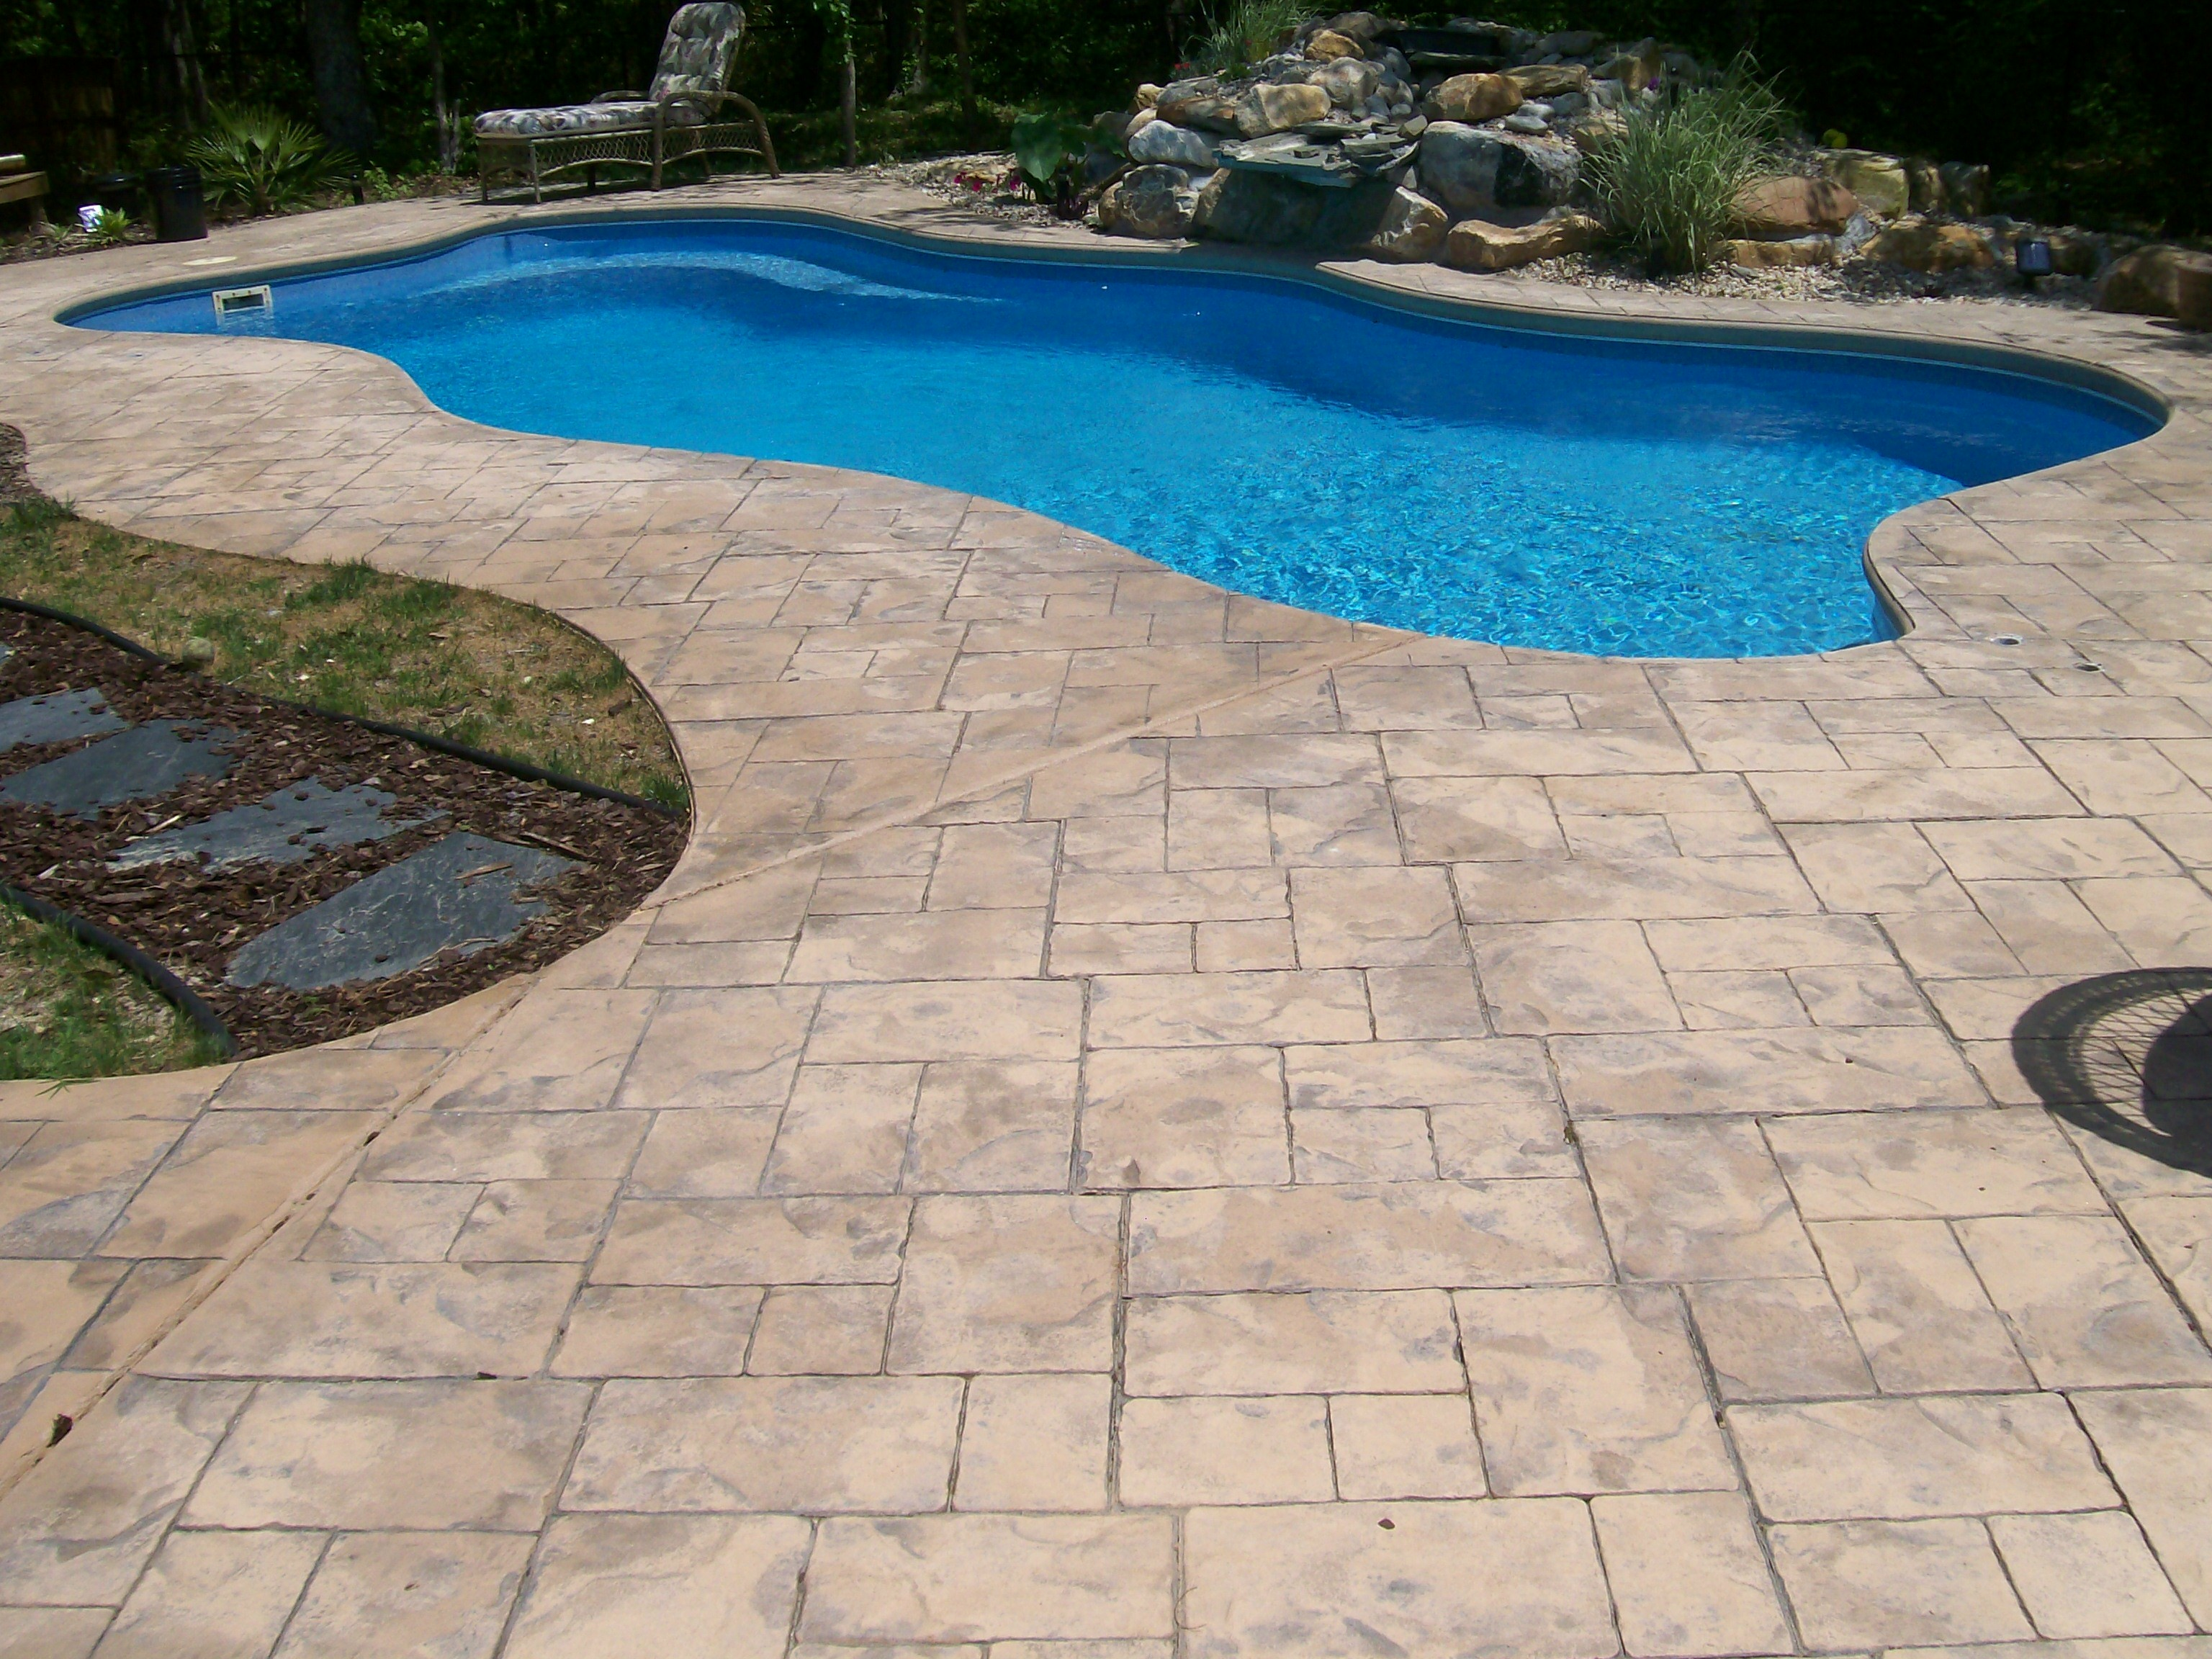 Concrete Pool Decks Photo Gallery Concrete Stamped Border Driveway With Broom Finish Interior.